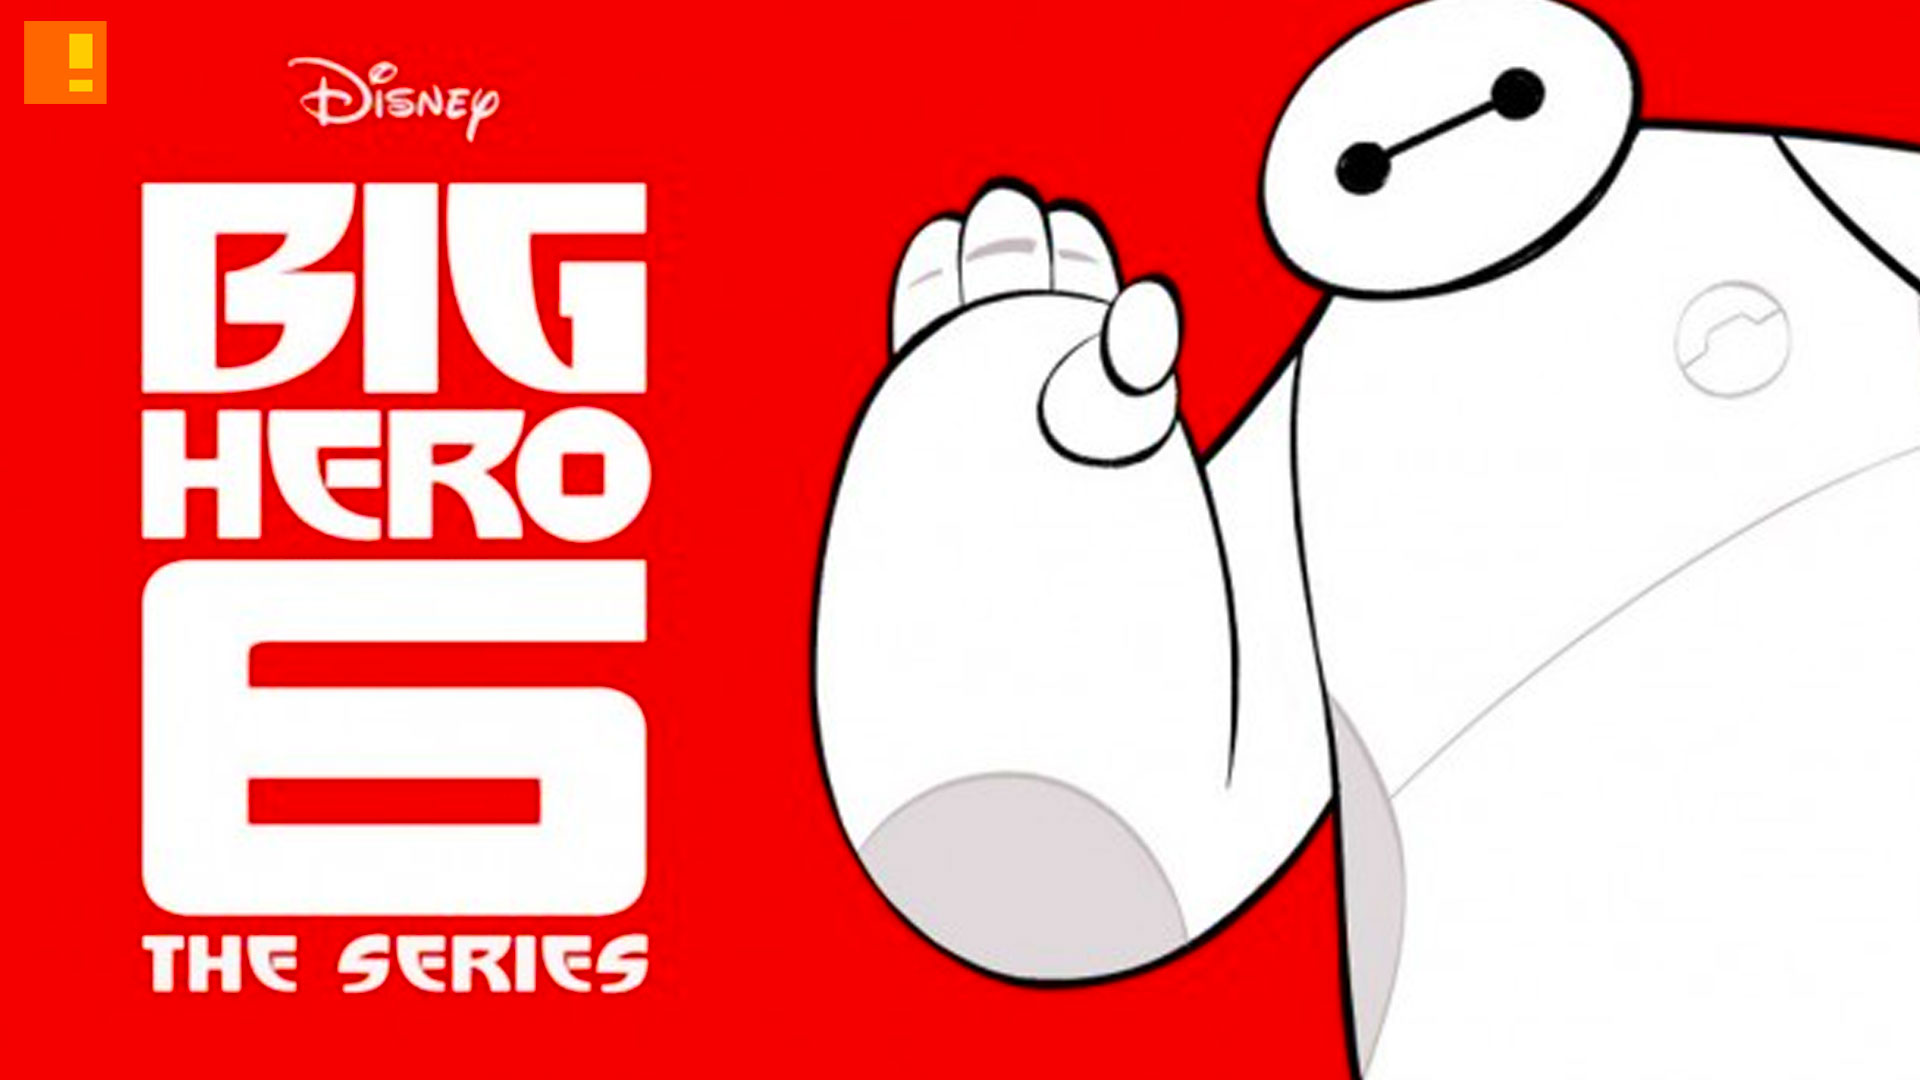 big hero 6 tv series. marvel. disney. the action pixel. @theactionpixel